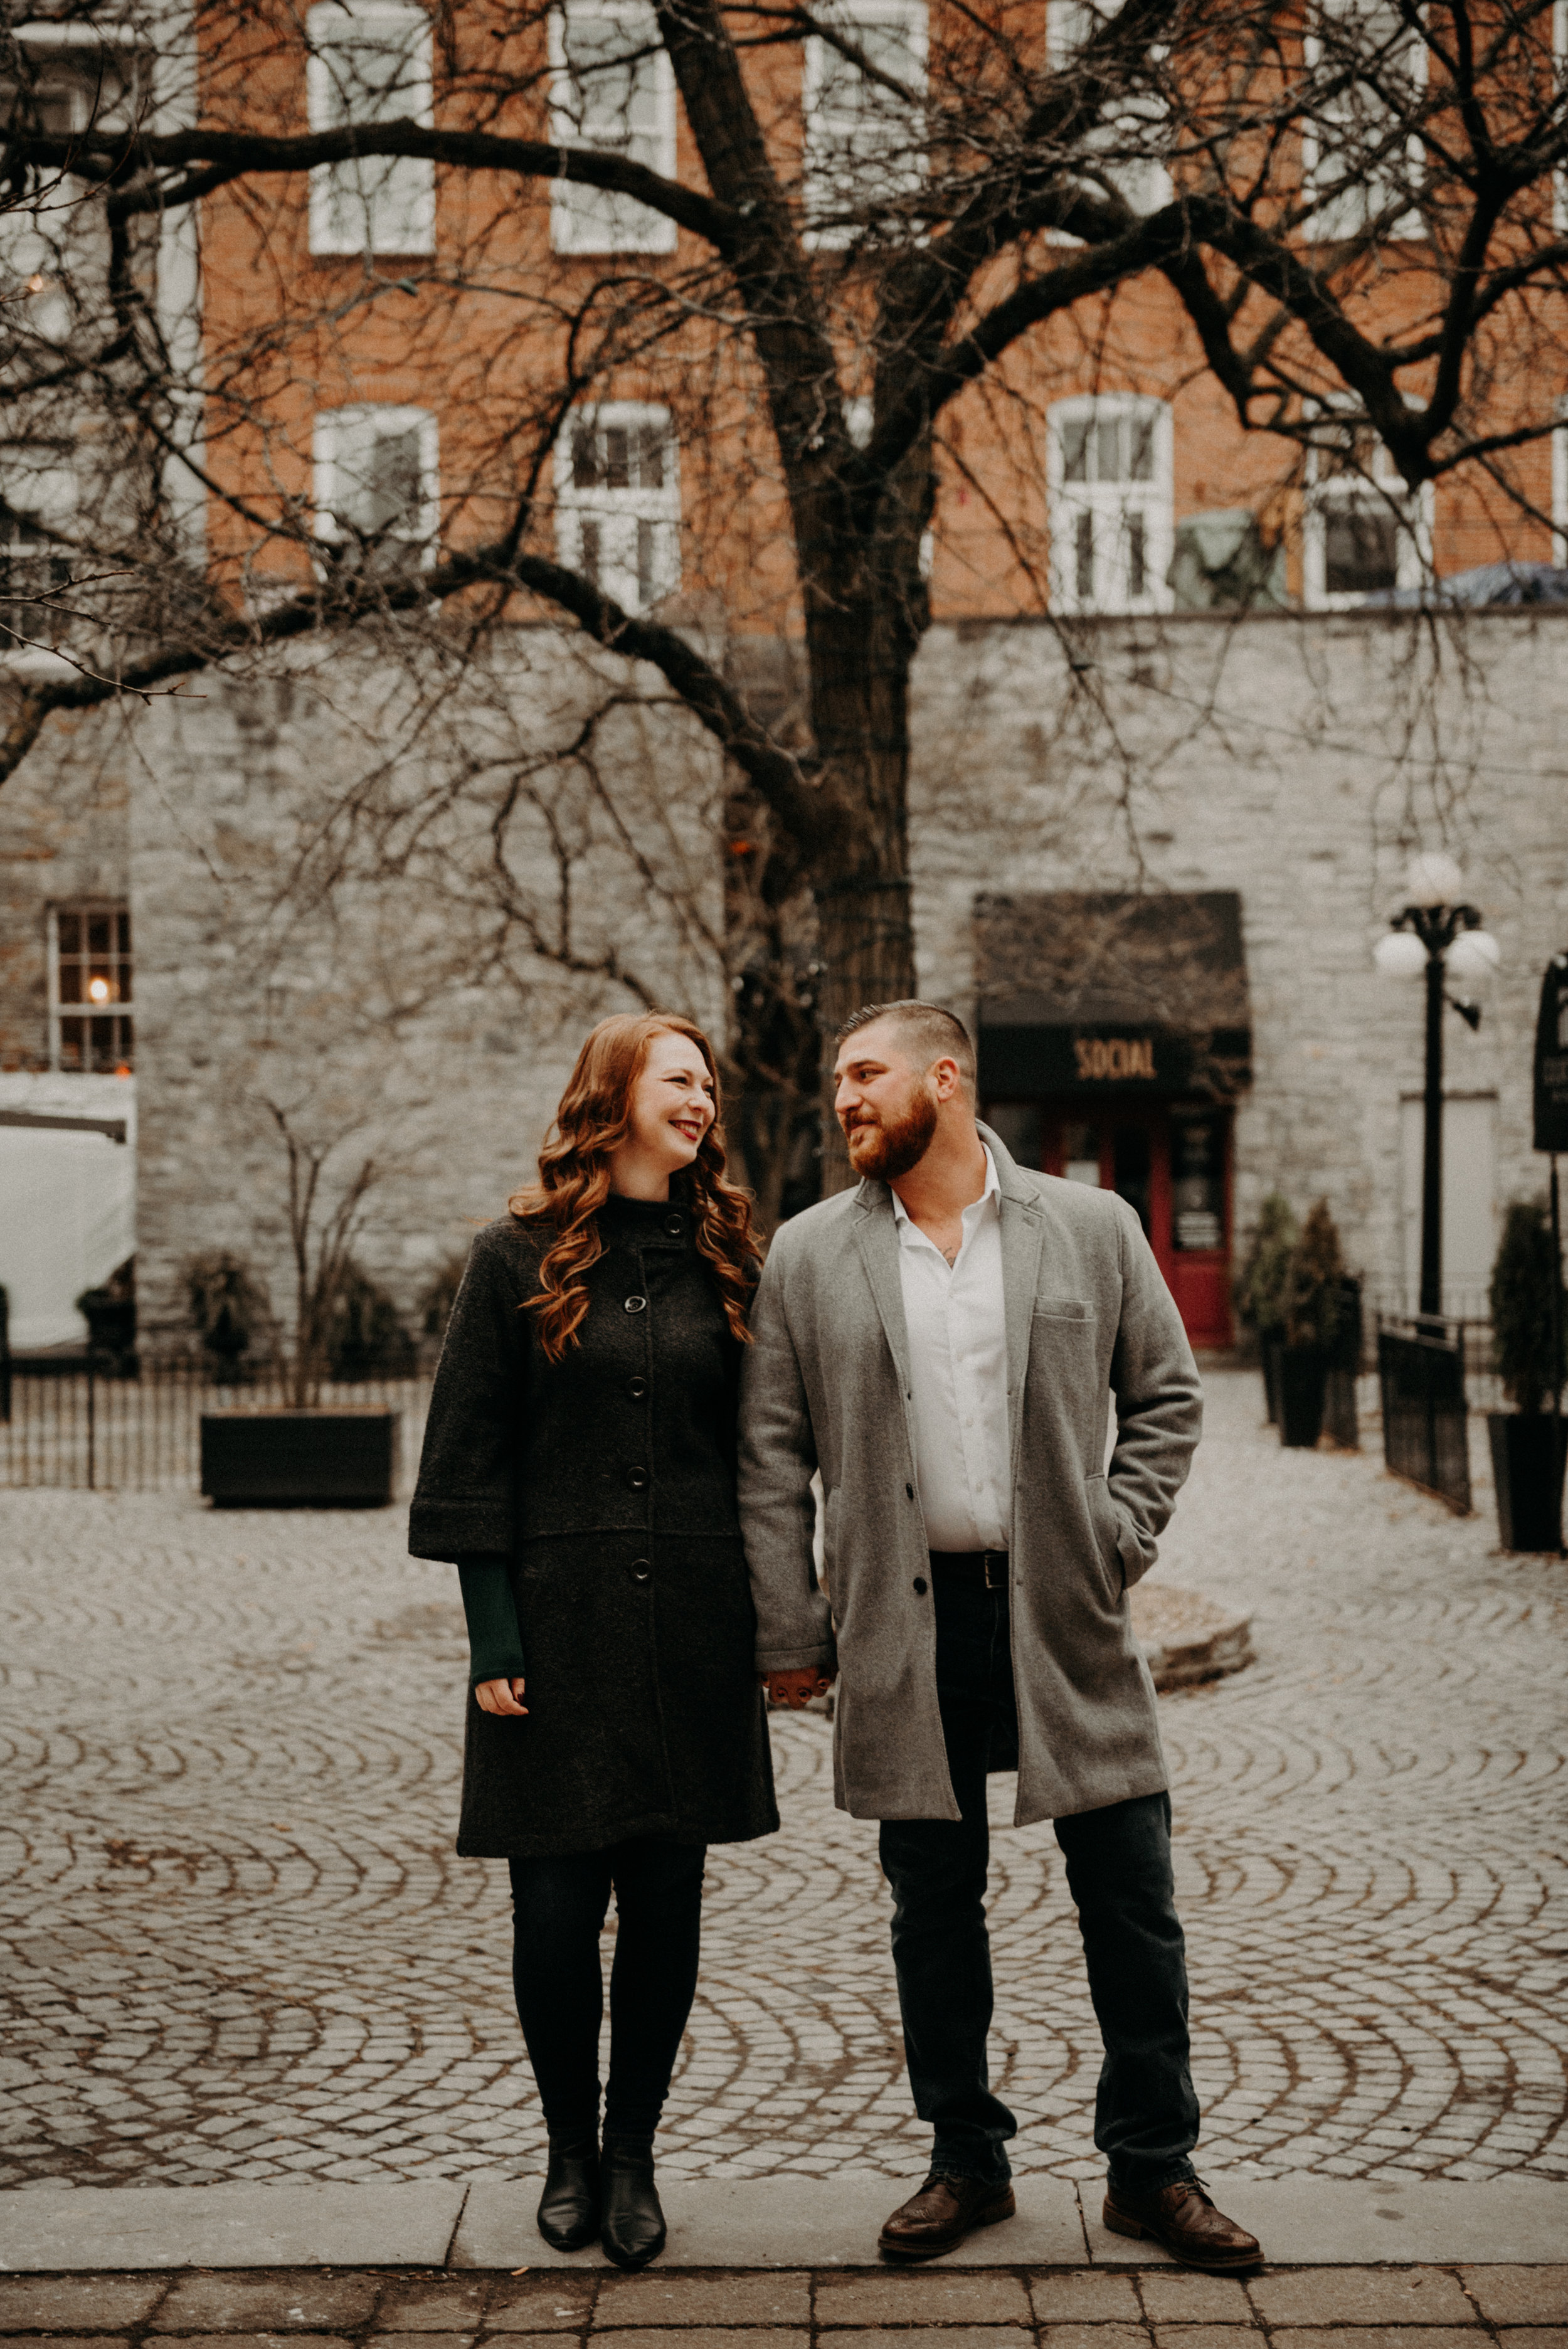 Mocha Tree Studios Ottawa Wedding and Engagement Photographer and Videographer Dark Moody Intimate Authentic Modern Romantic Cinematic Best Candid Wedding Byward Market 1